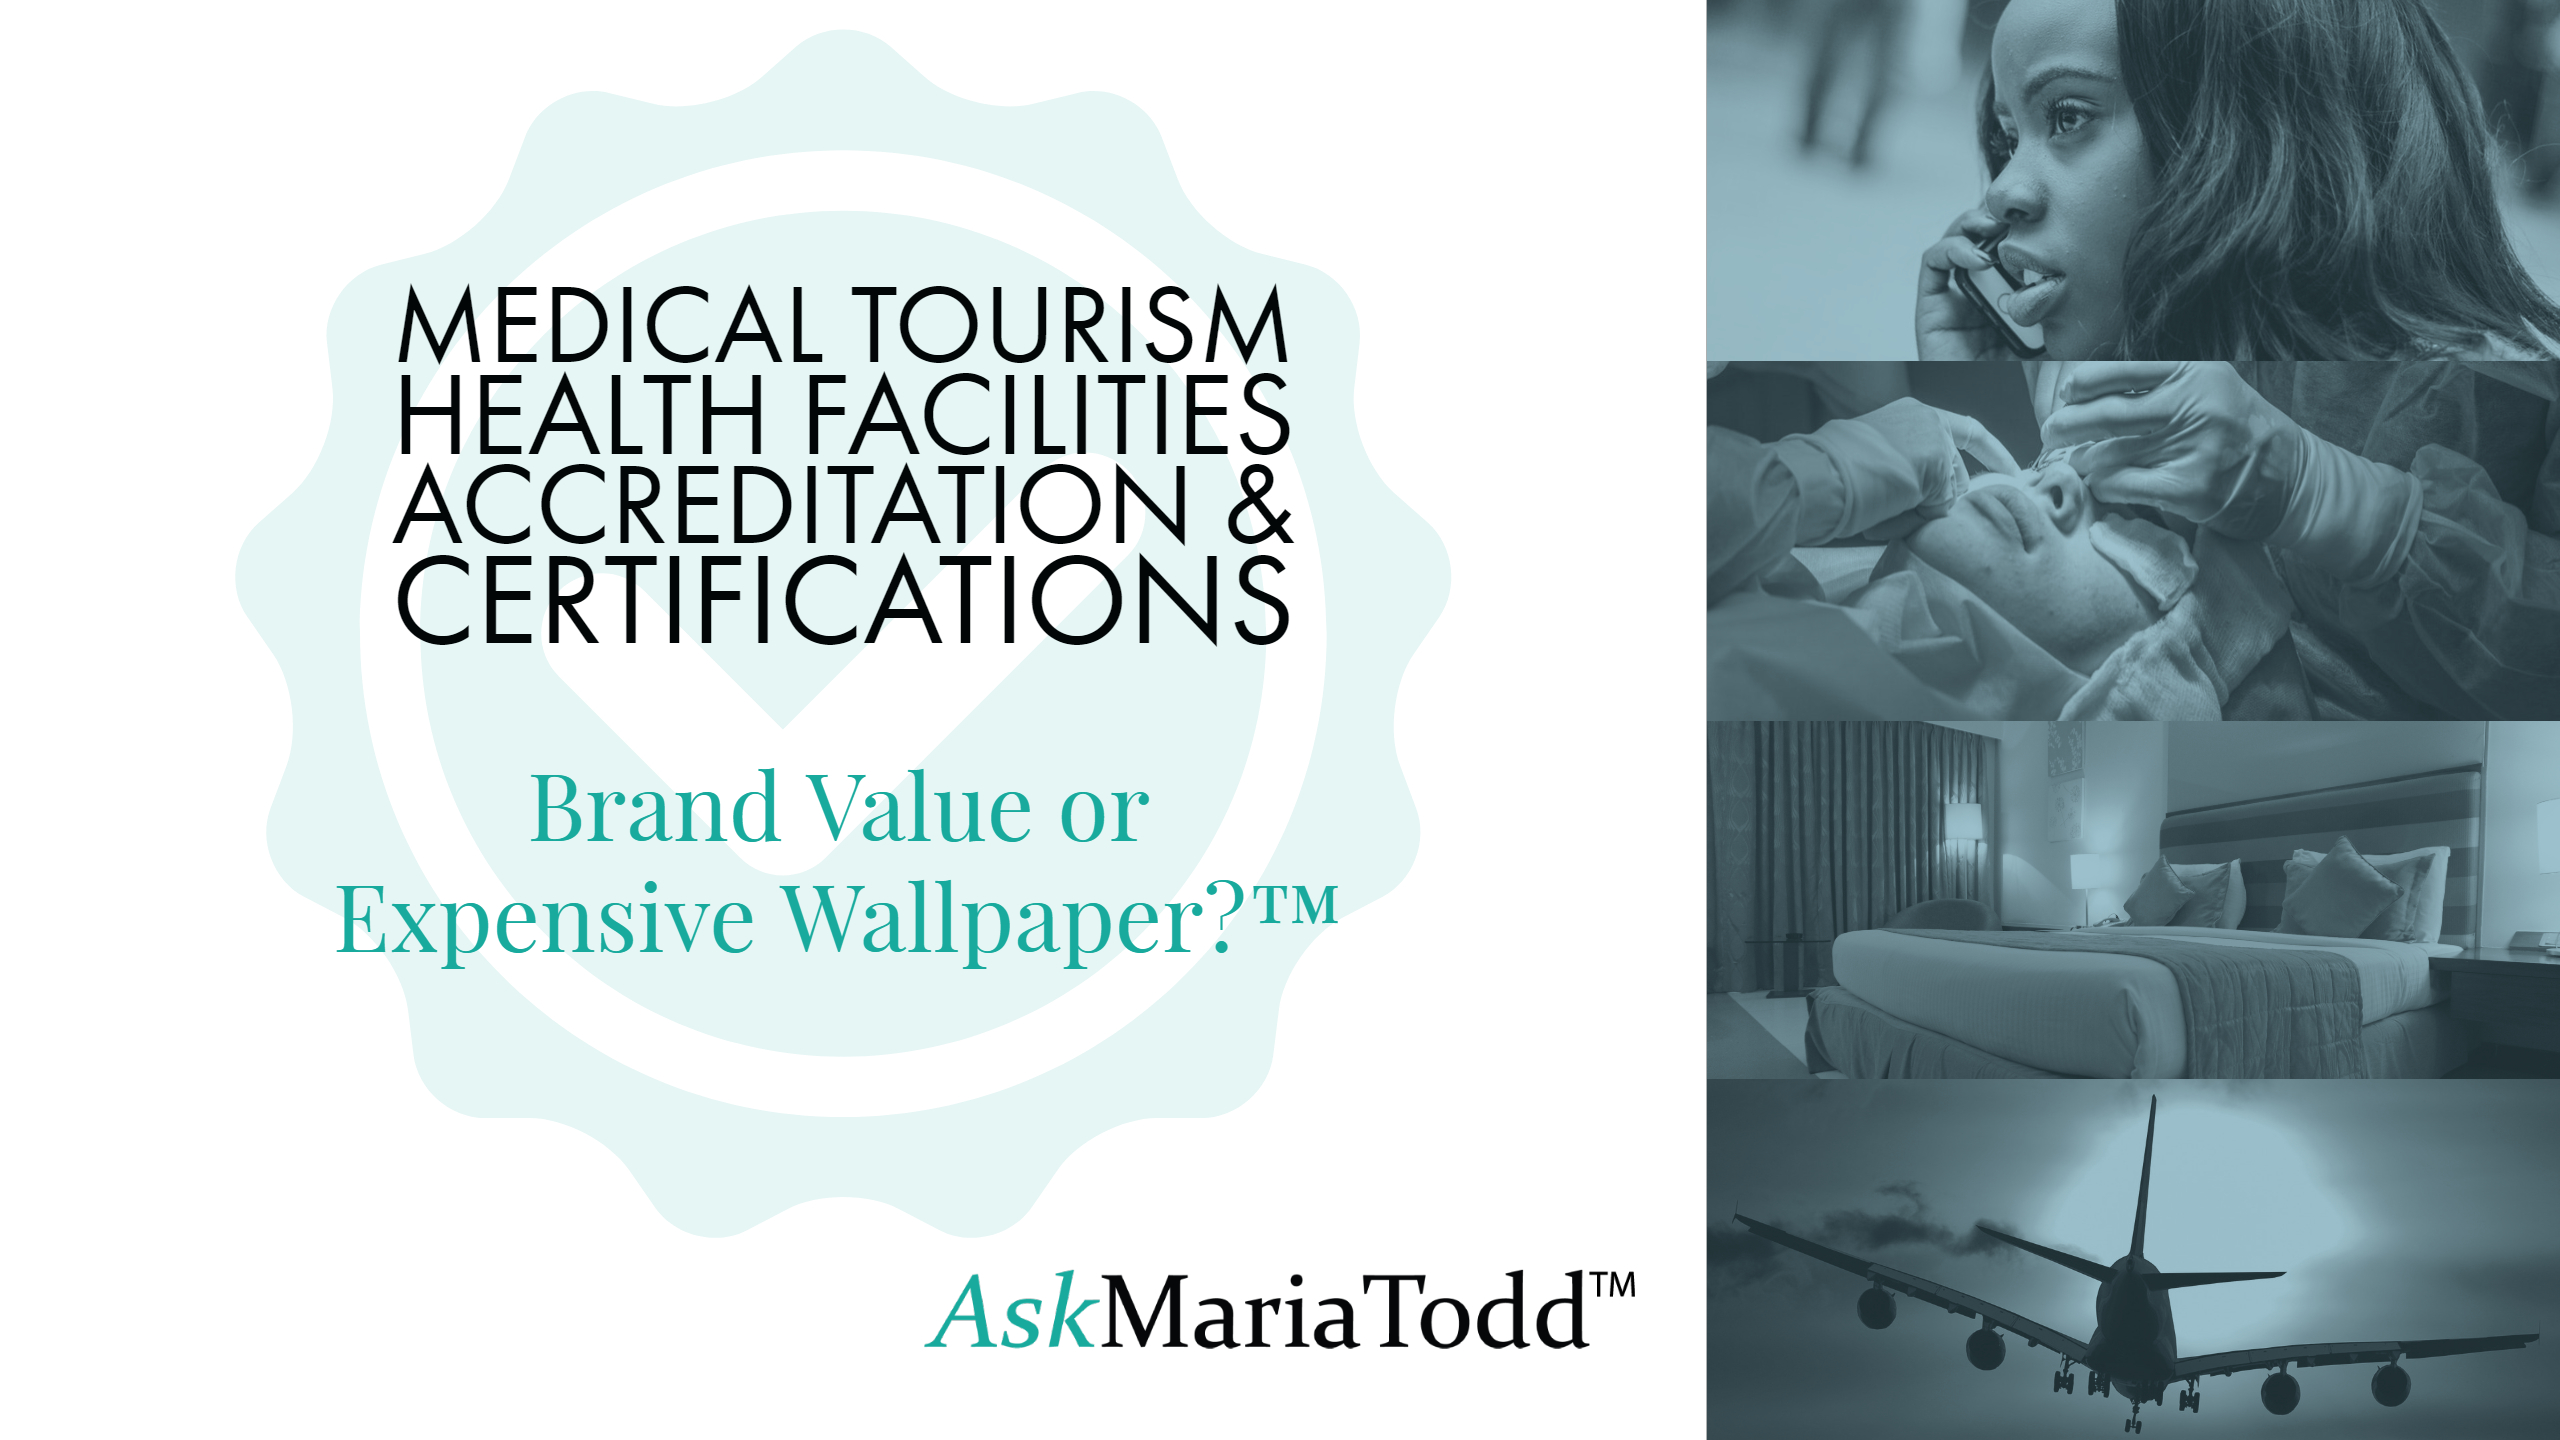 image from MEDICAL TOURISM HEALTH FACILITIES ACCREDITATION & CERTIFICATIONS brochure cover